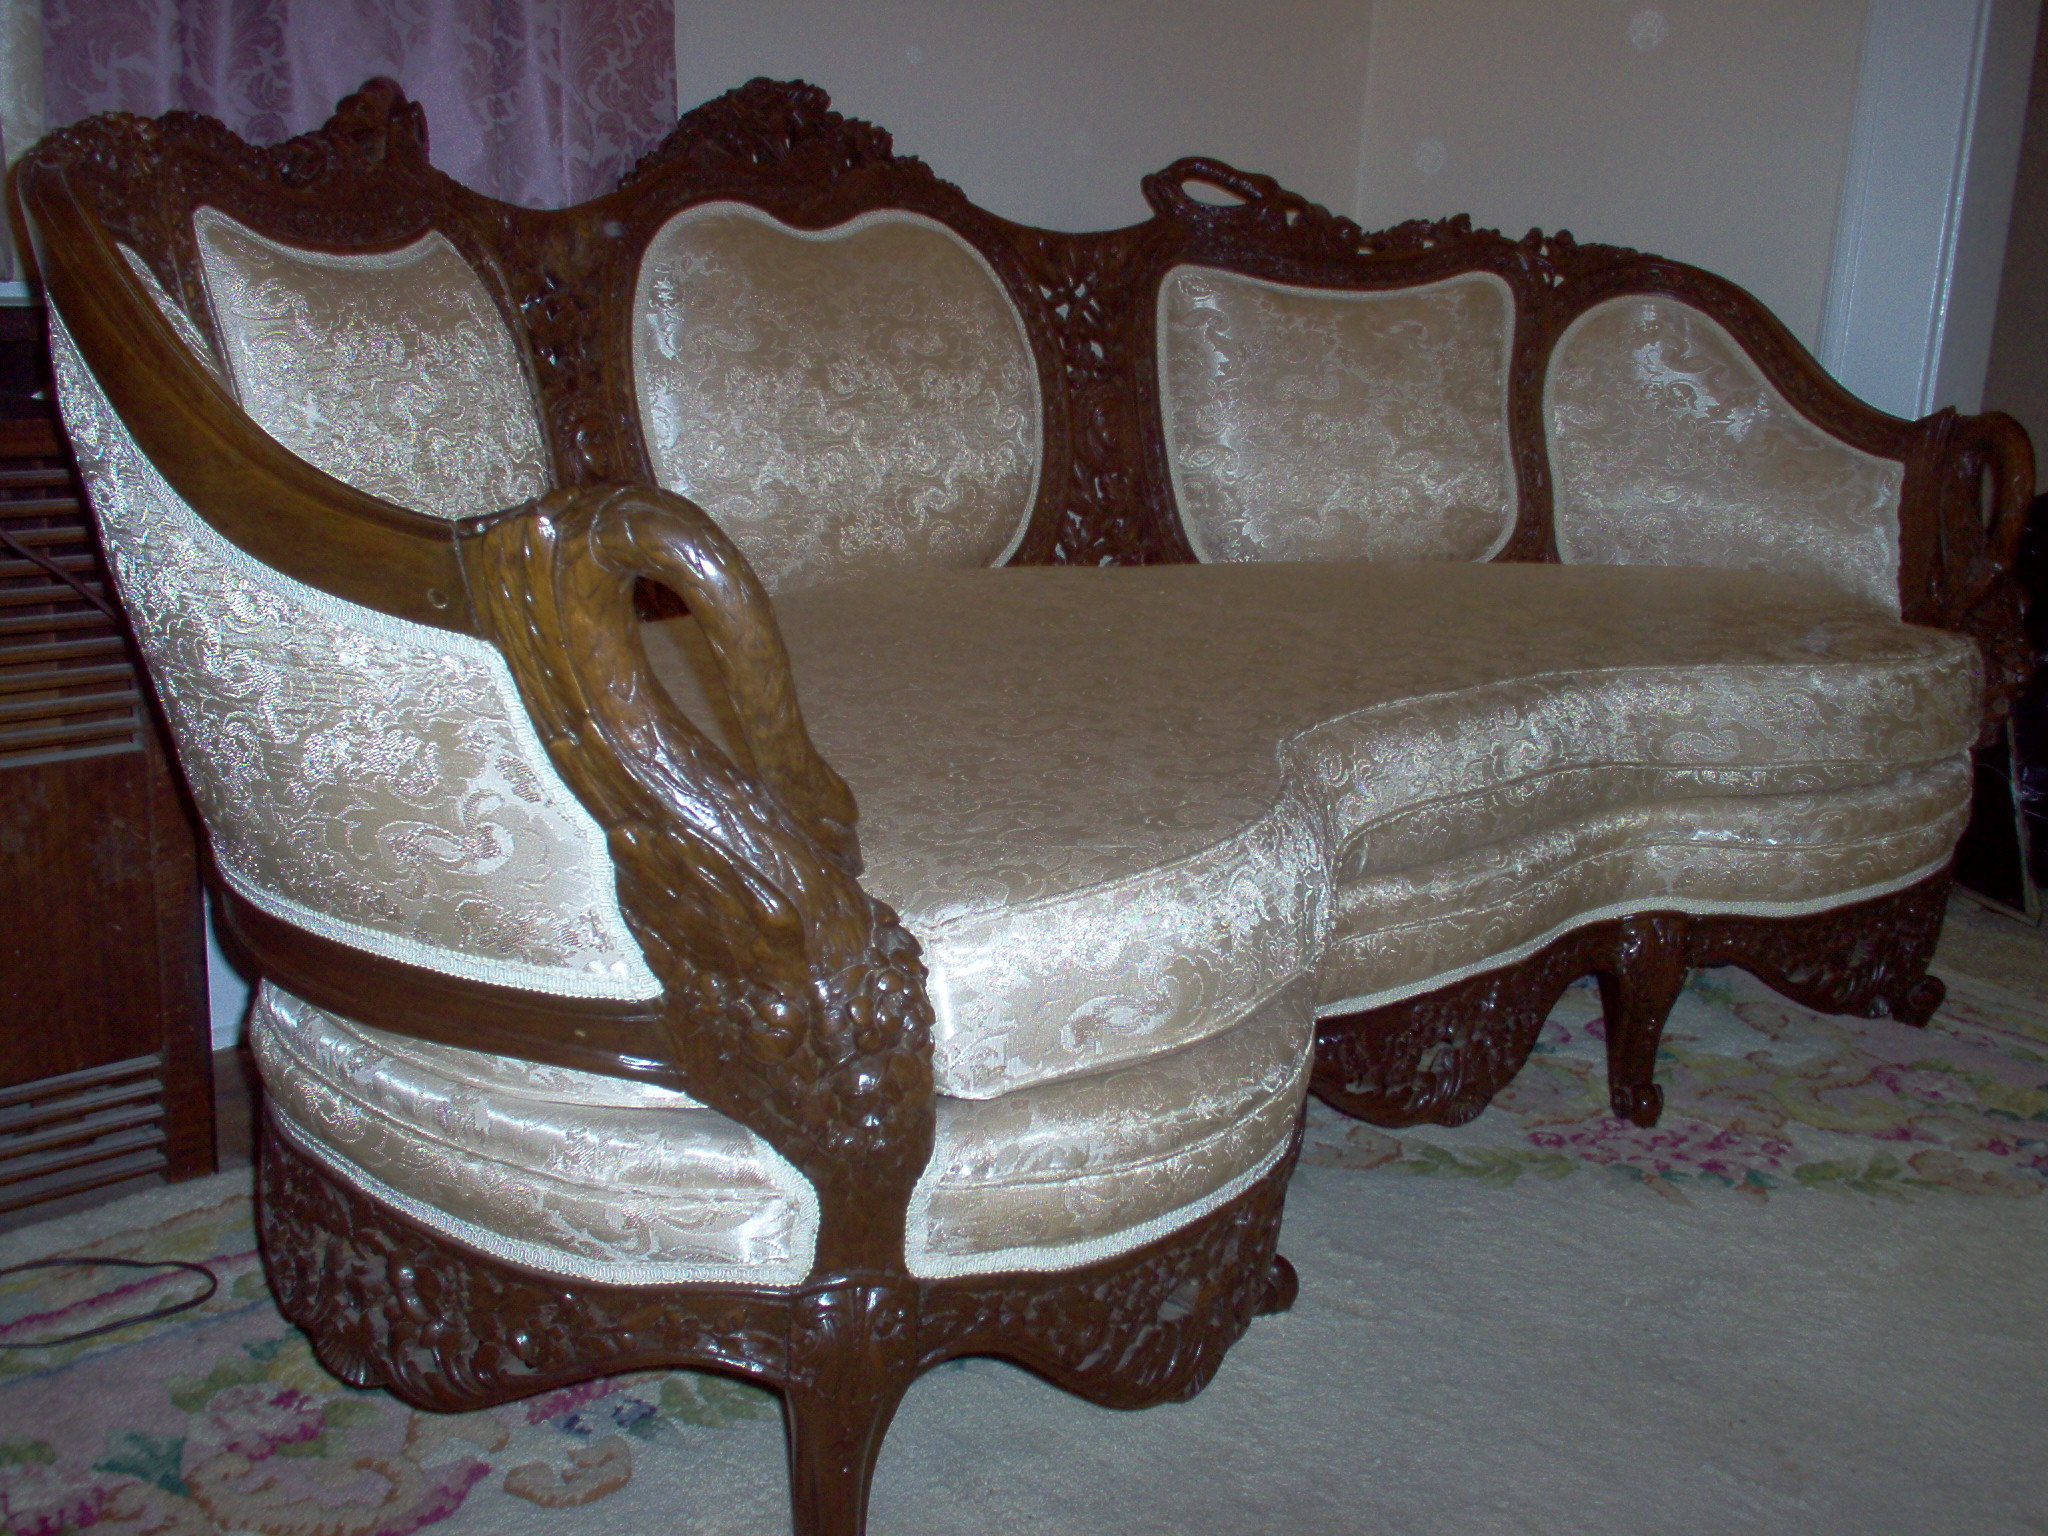 Marvelous Victorian Parlor Set Includes Sofa Chair With Marble Theyellowbook Wood Chair Design Ideas Theyellowbookinfo